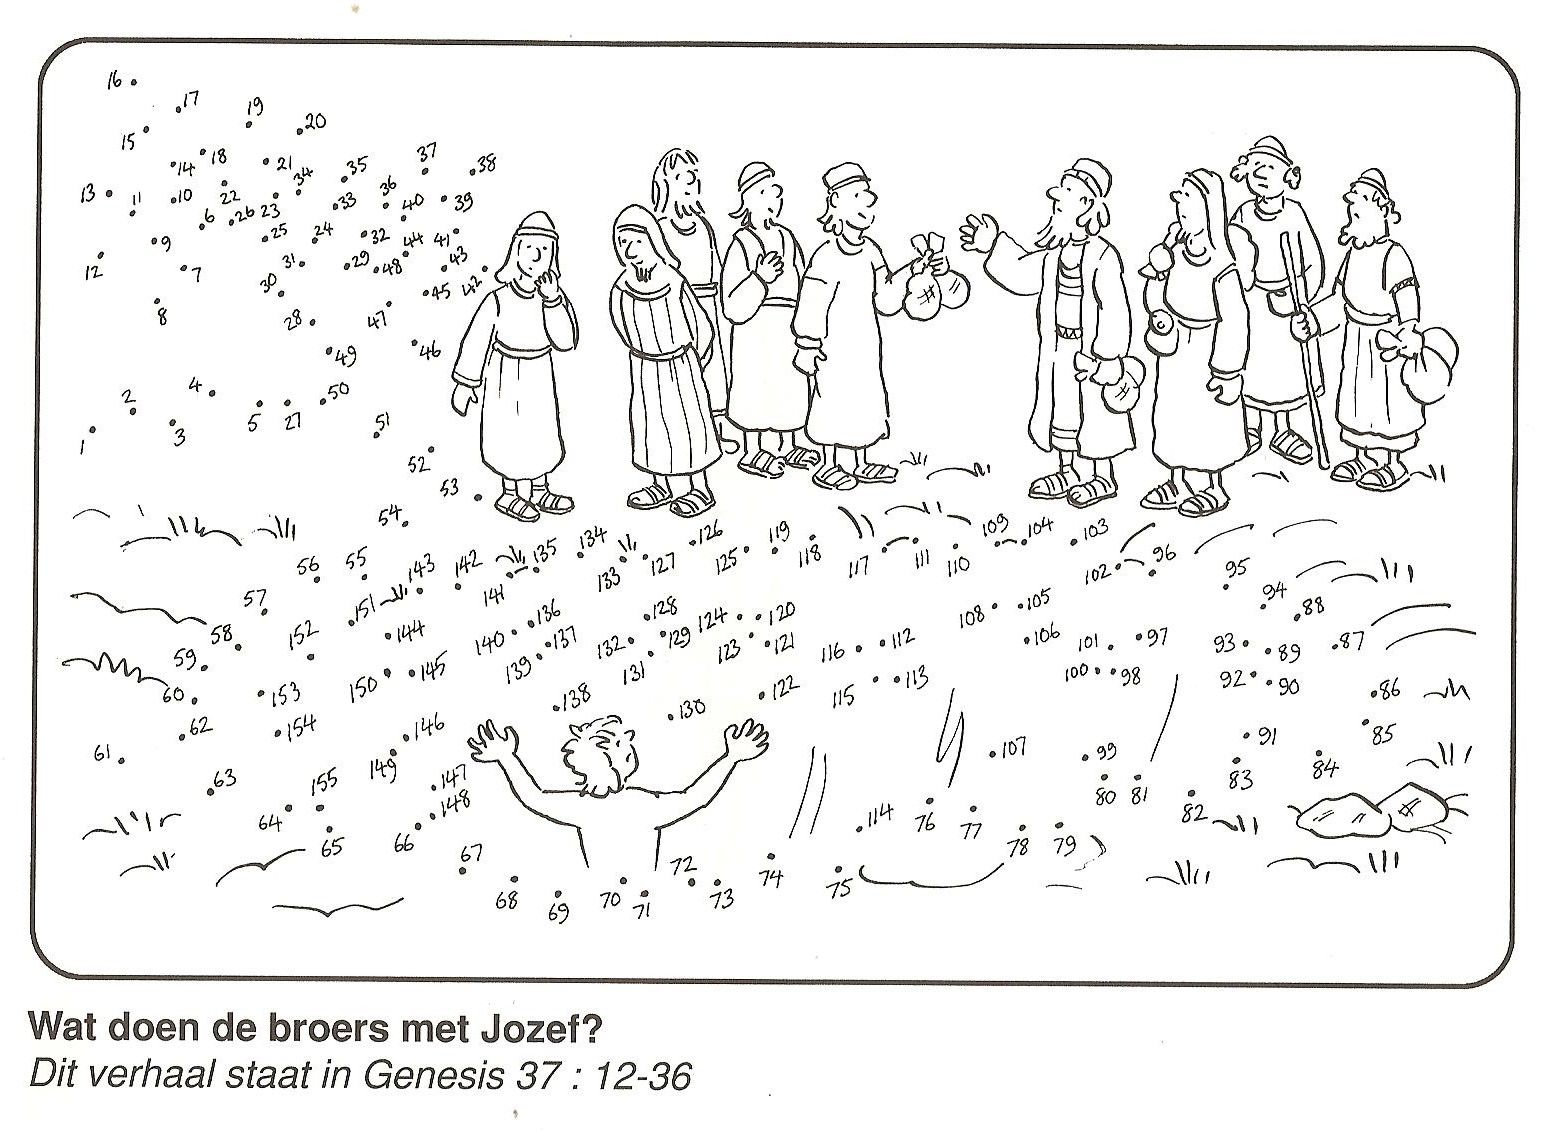 Joseph Thrown Into The Pit Genesis 37 Dot To Dot Printable Sunday School